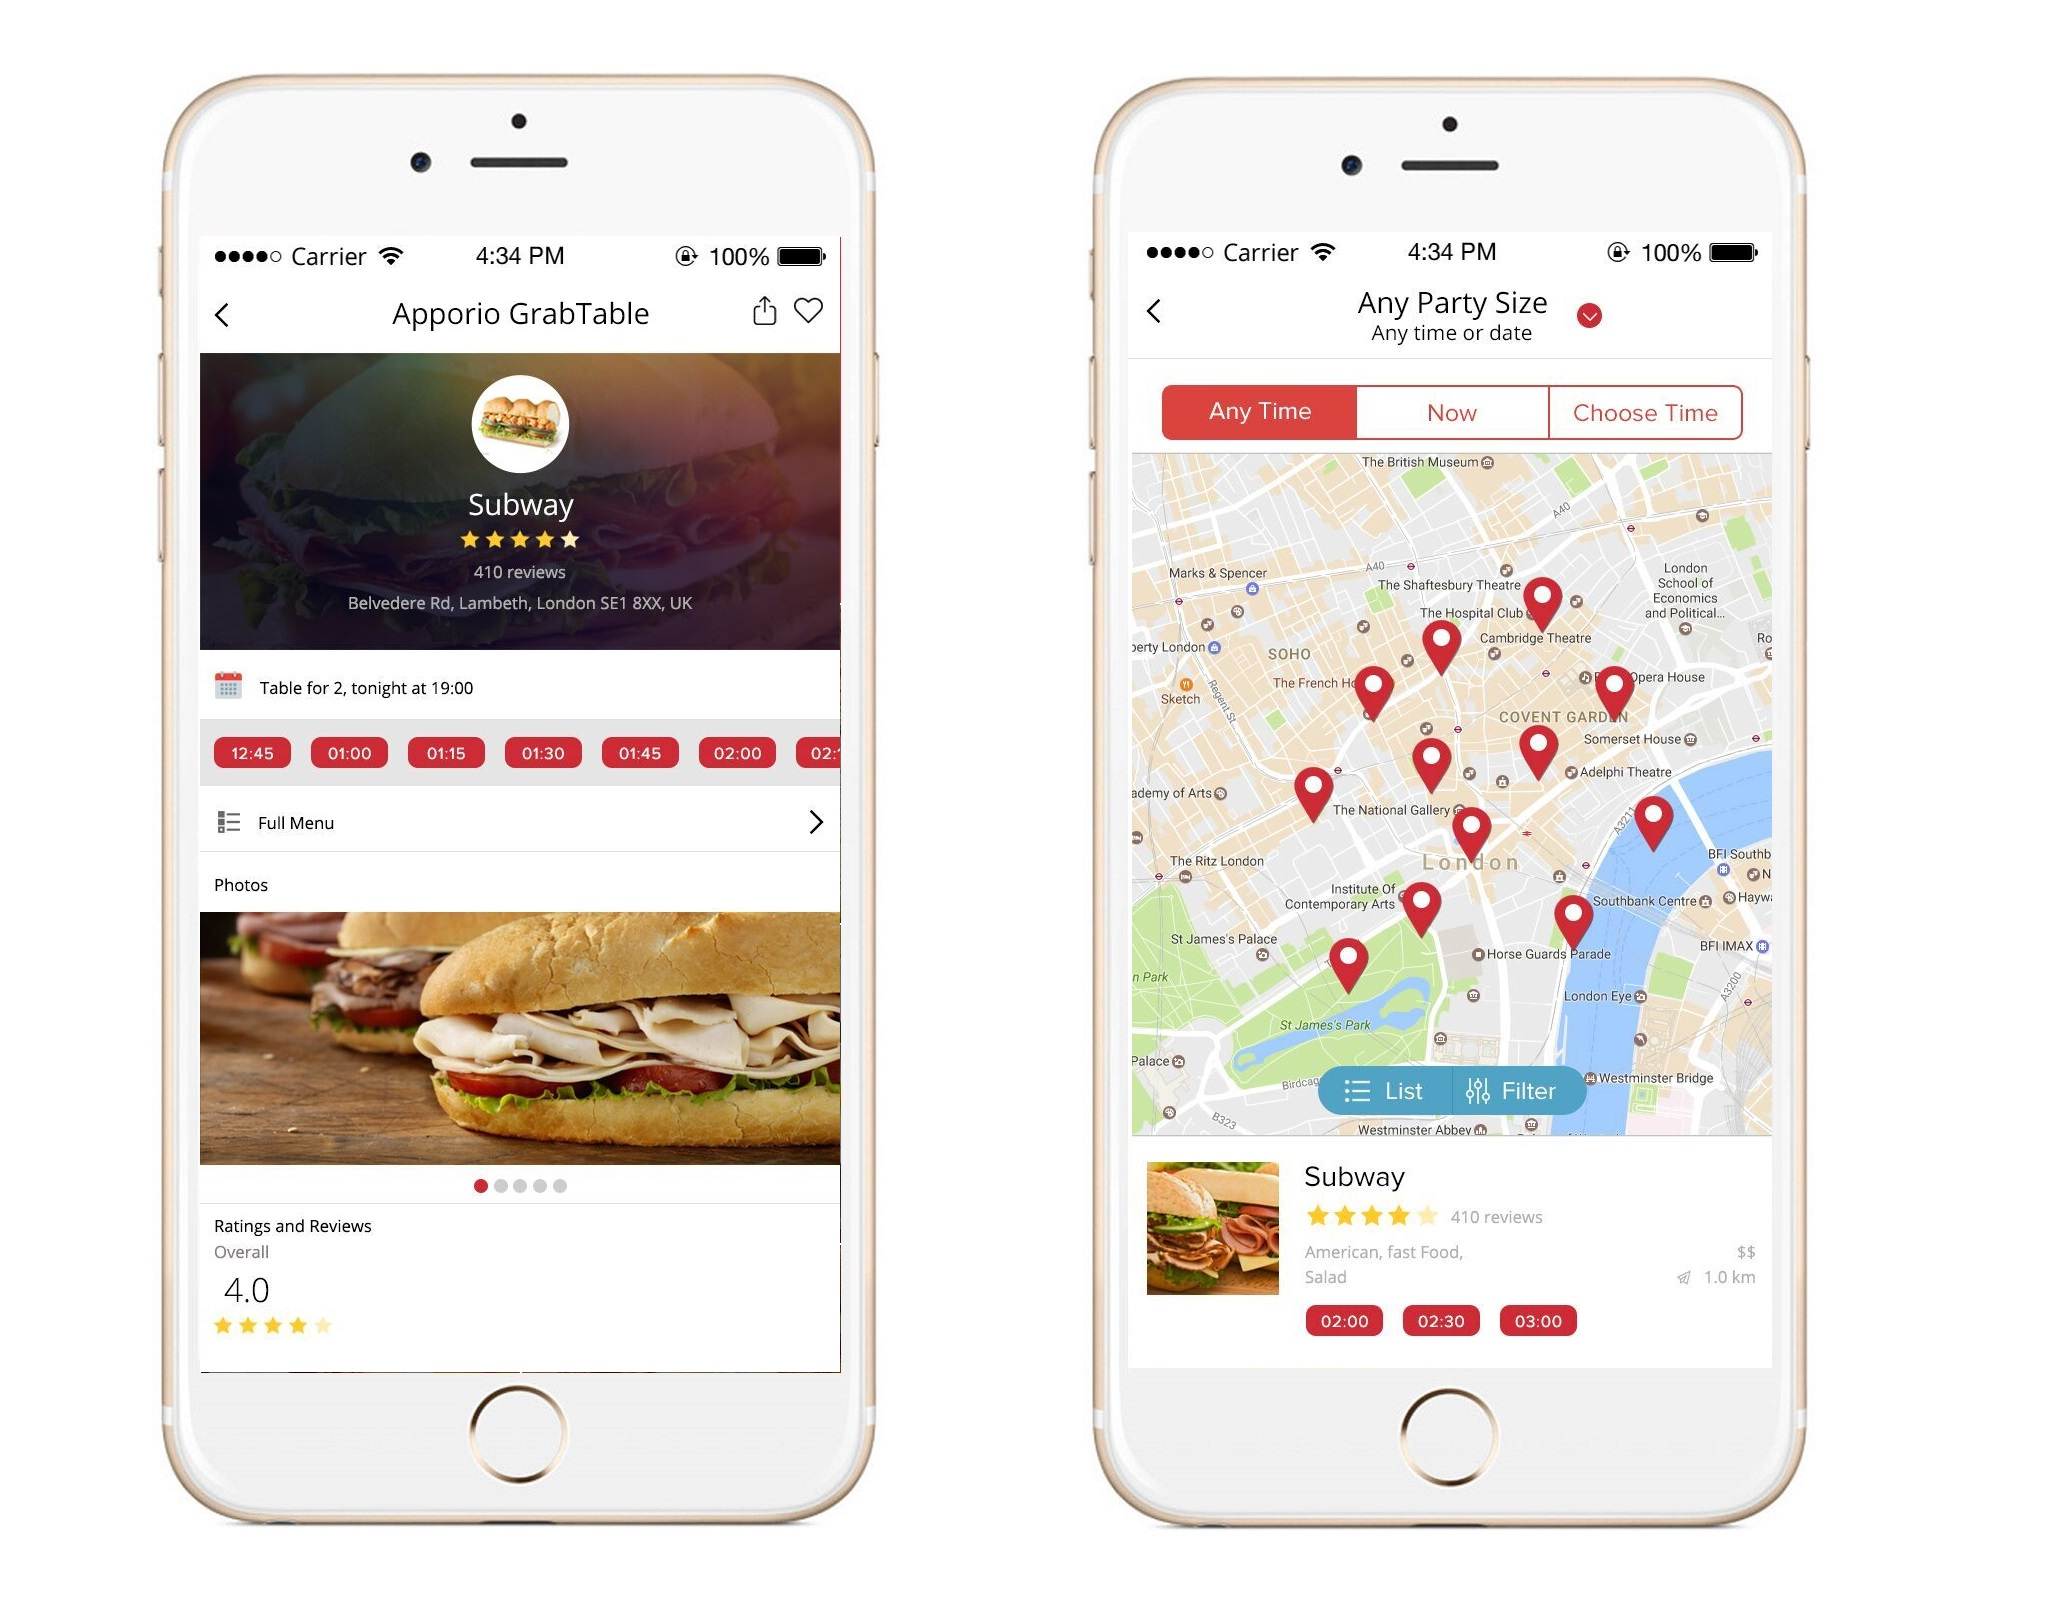 Apporio Restaurant App for Food Ordering and Delivery